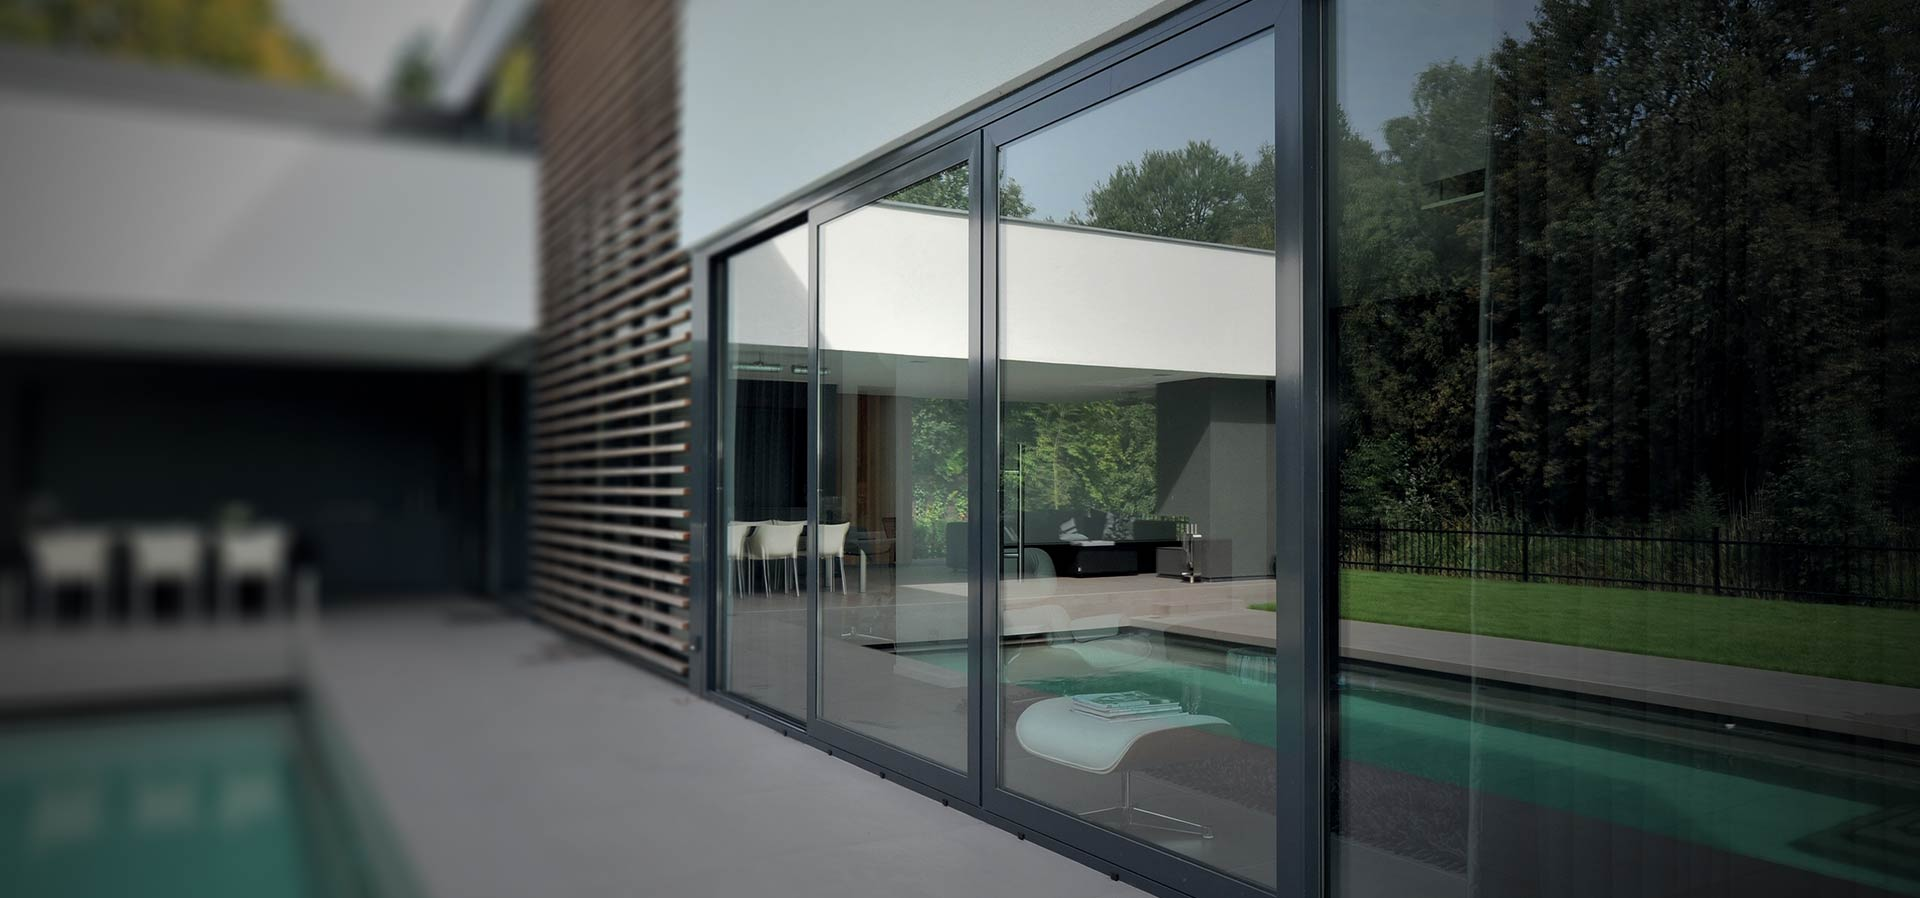 Premium aluminium sliding patio doors used in a luxury new build property